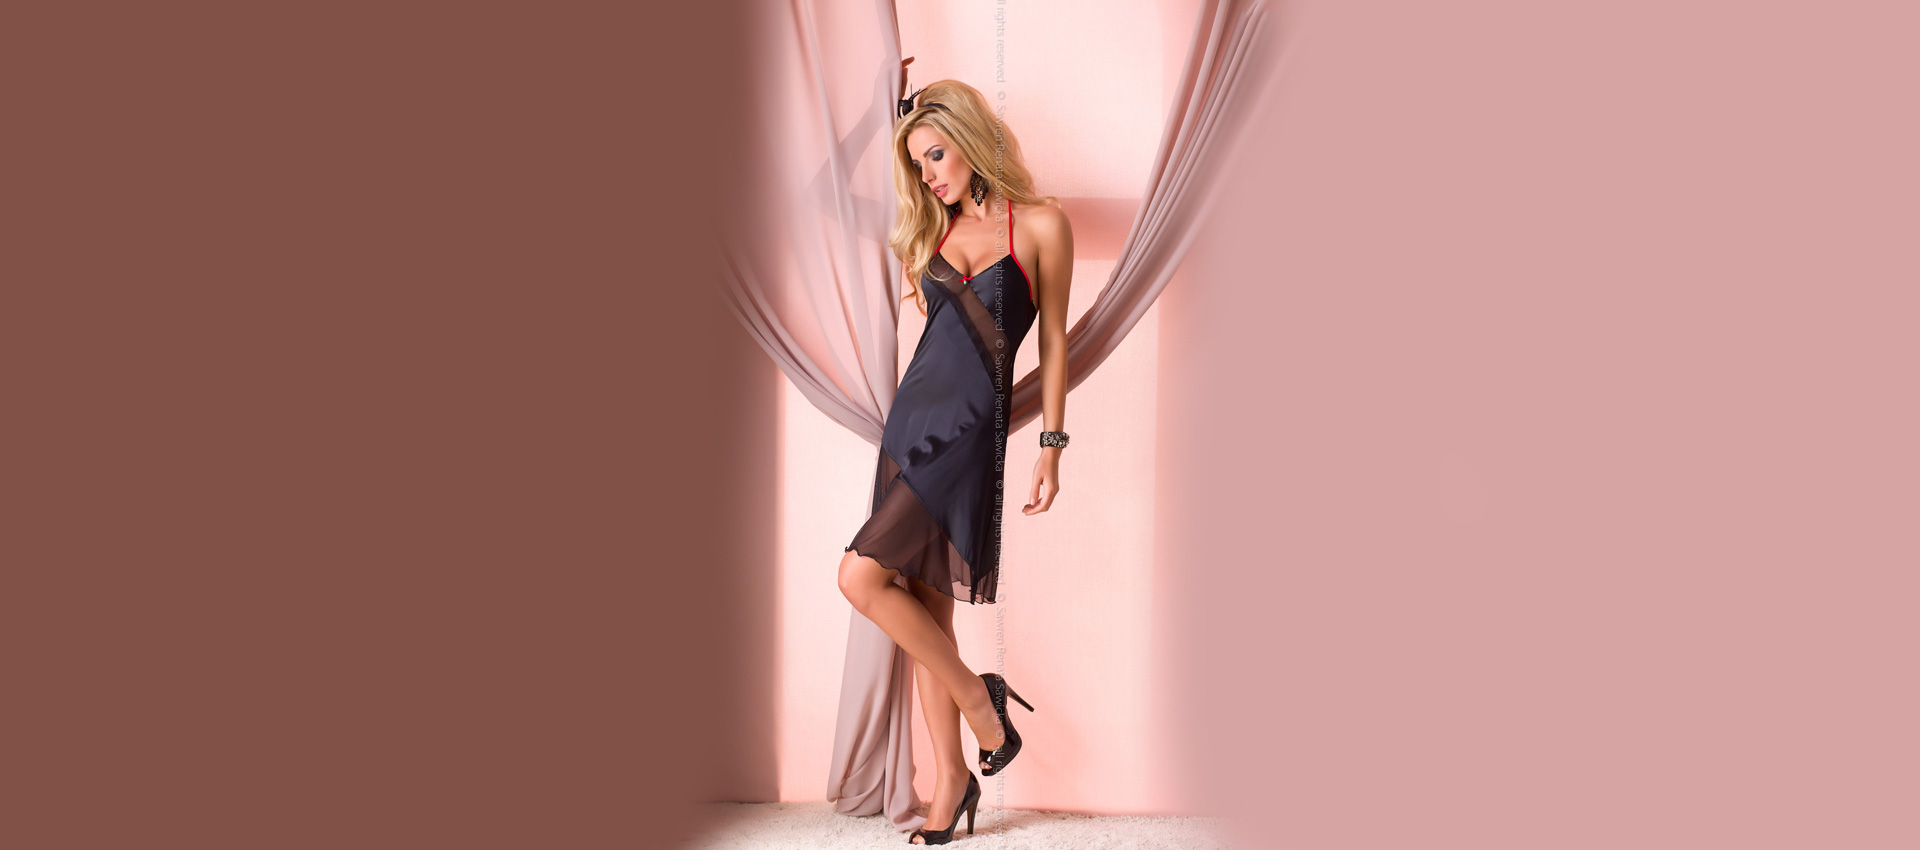 Fireopal chemise